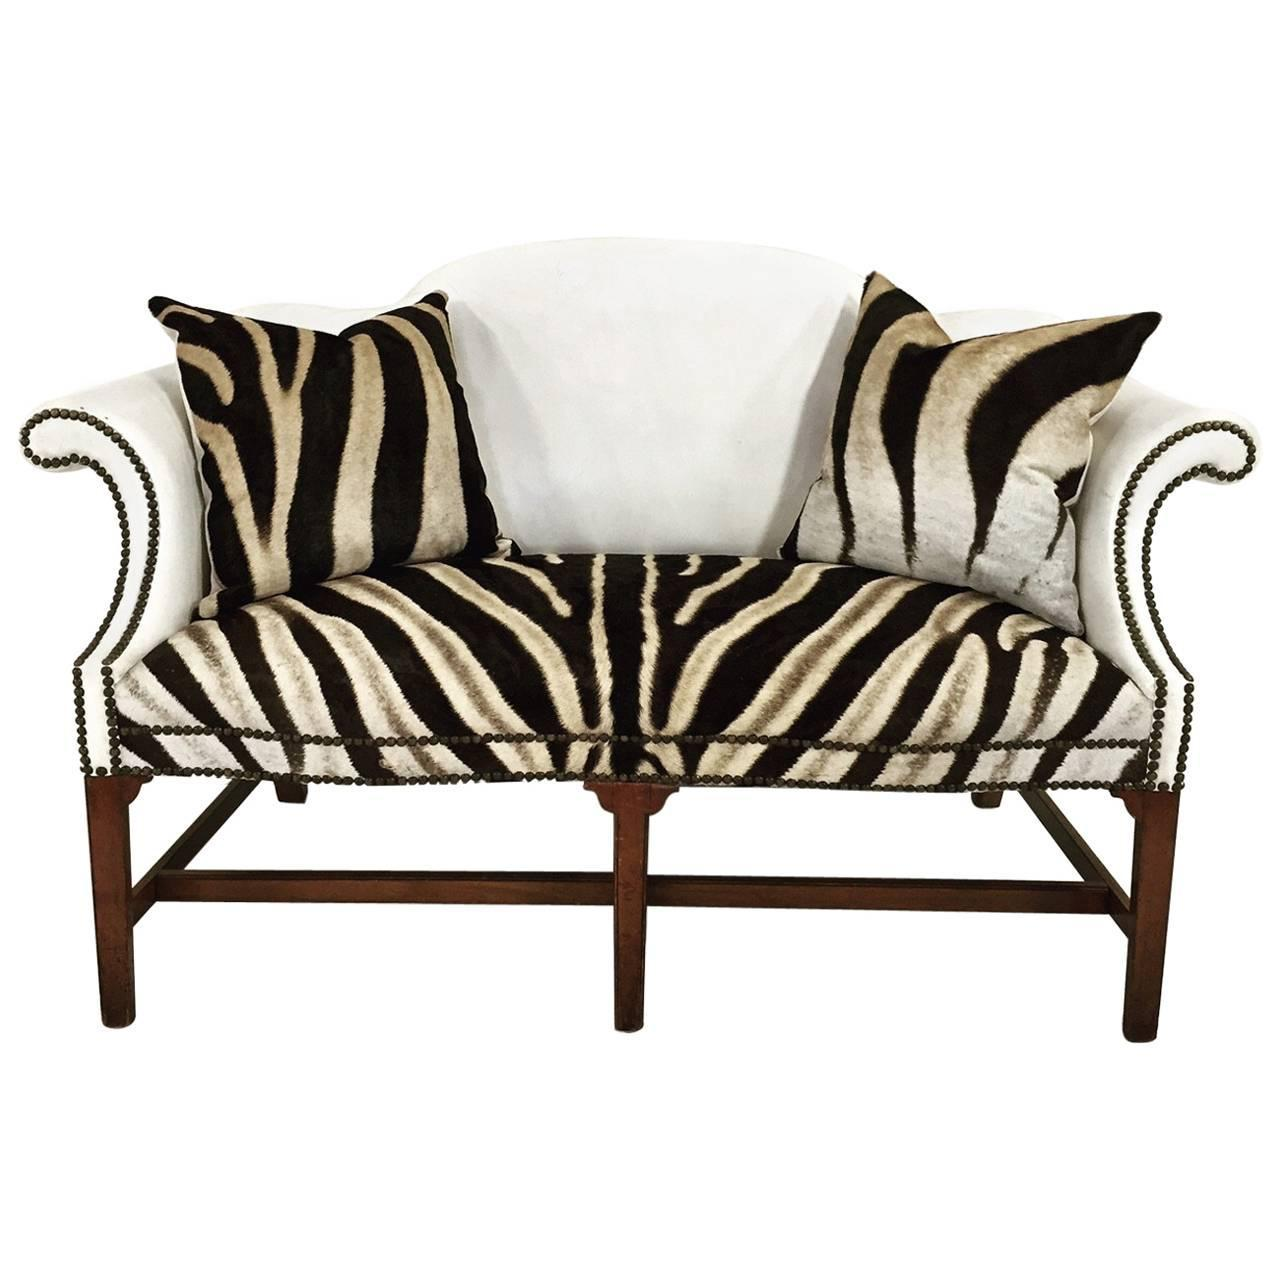 Vintage White Leather And Zebra Hide Loveseat With Two